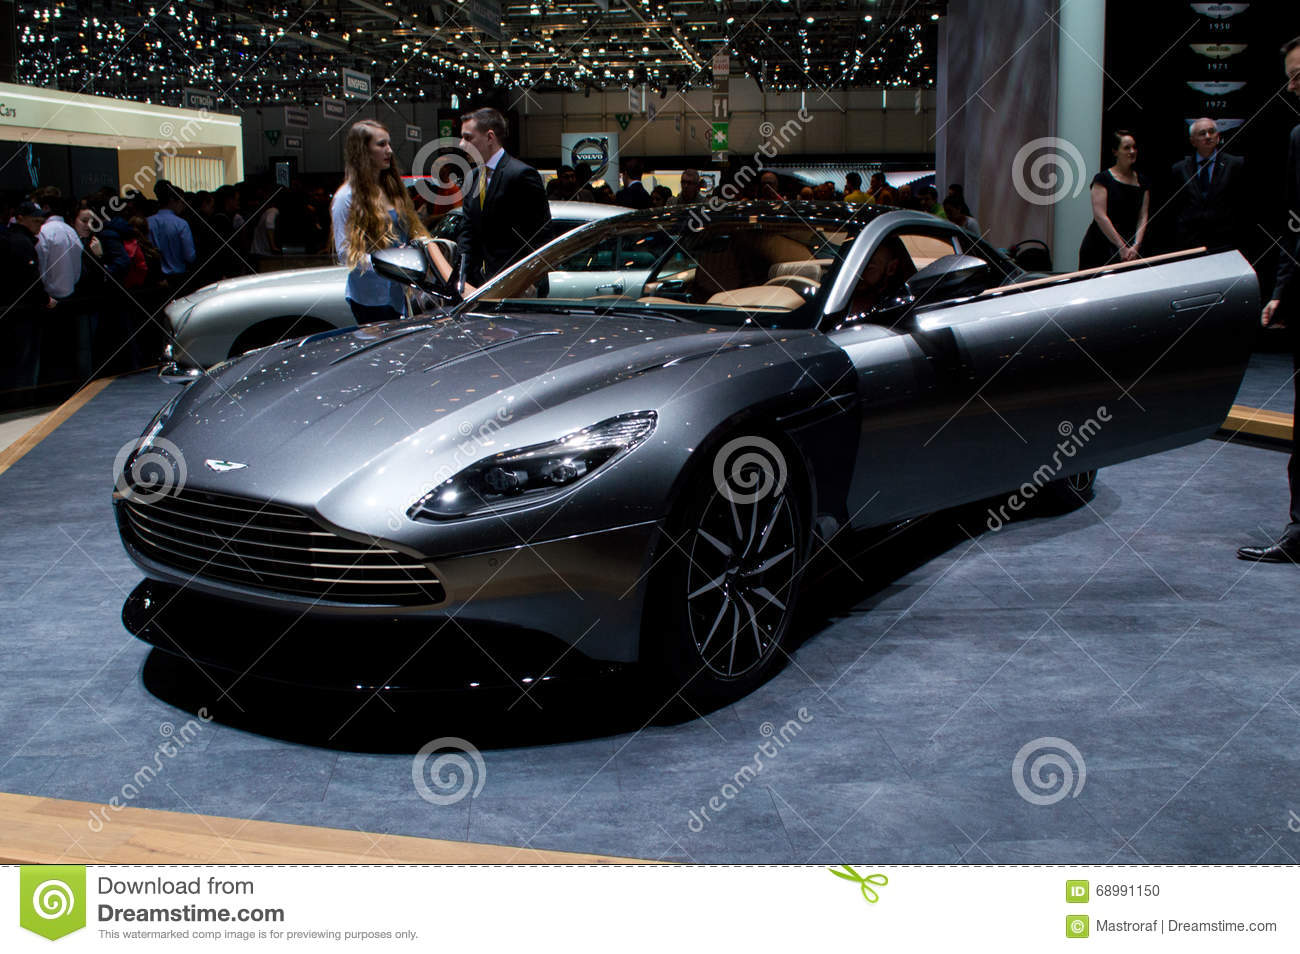 aston martin db11 volante at geneva 2016 editorial image - image of